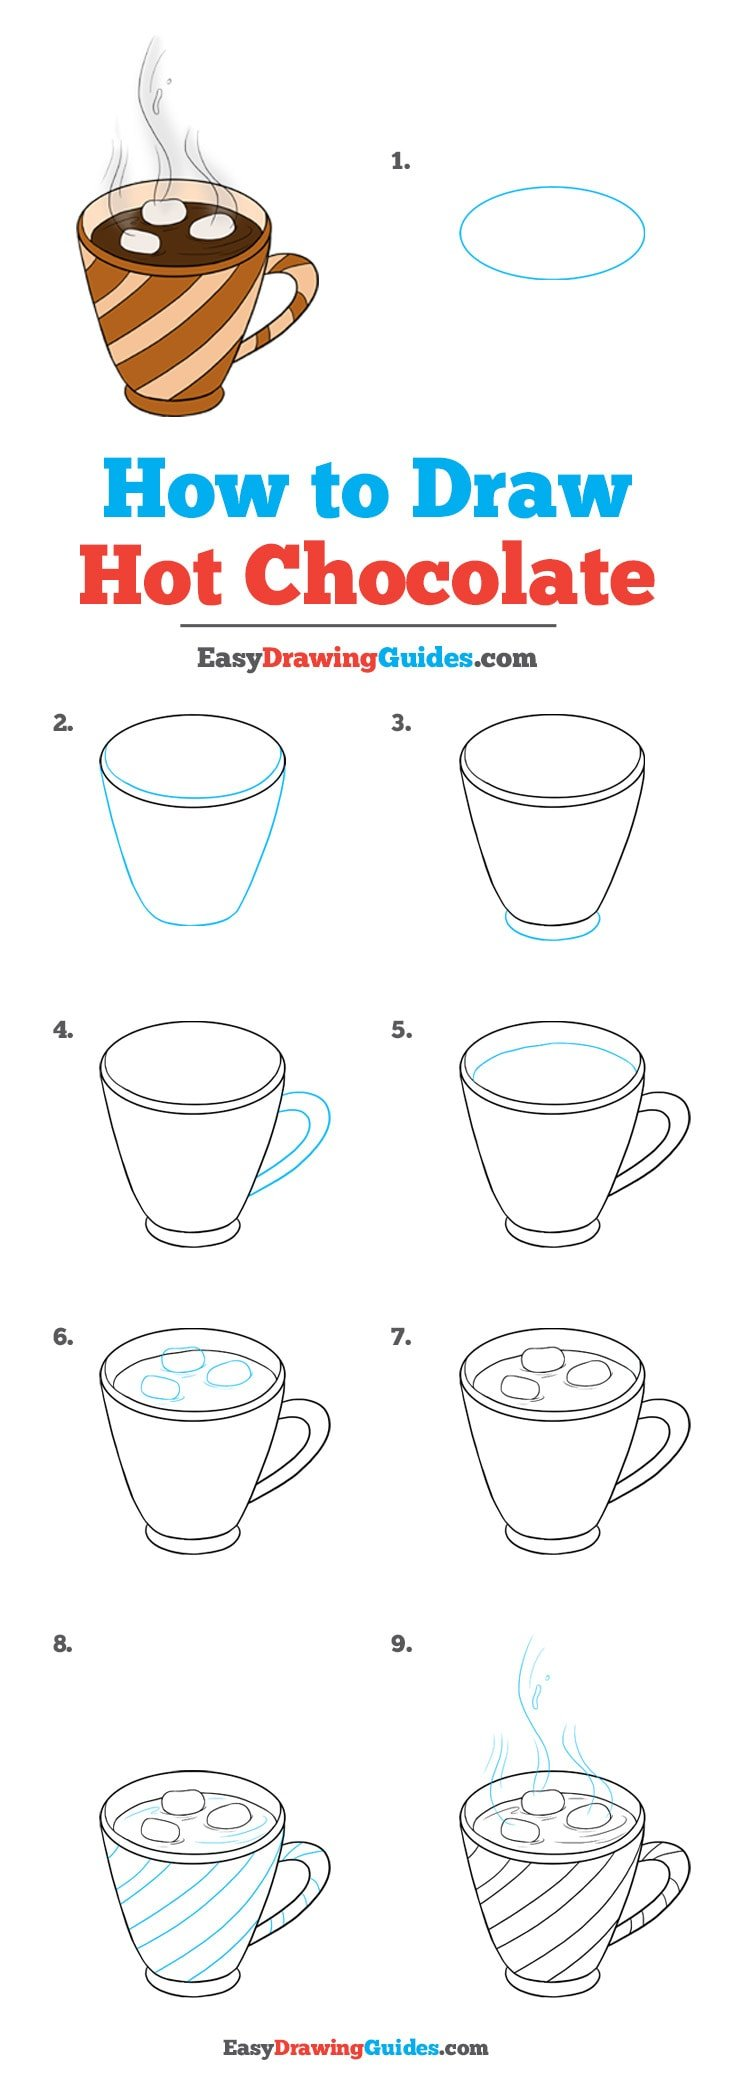 How to Draw Hot Chocolate